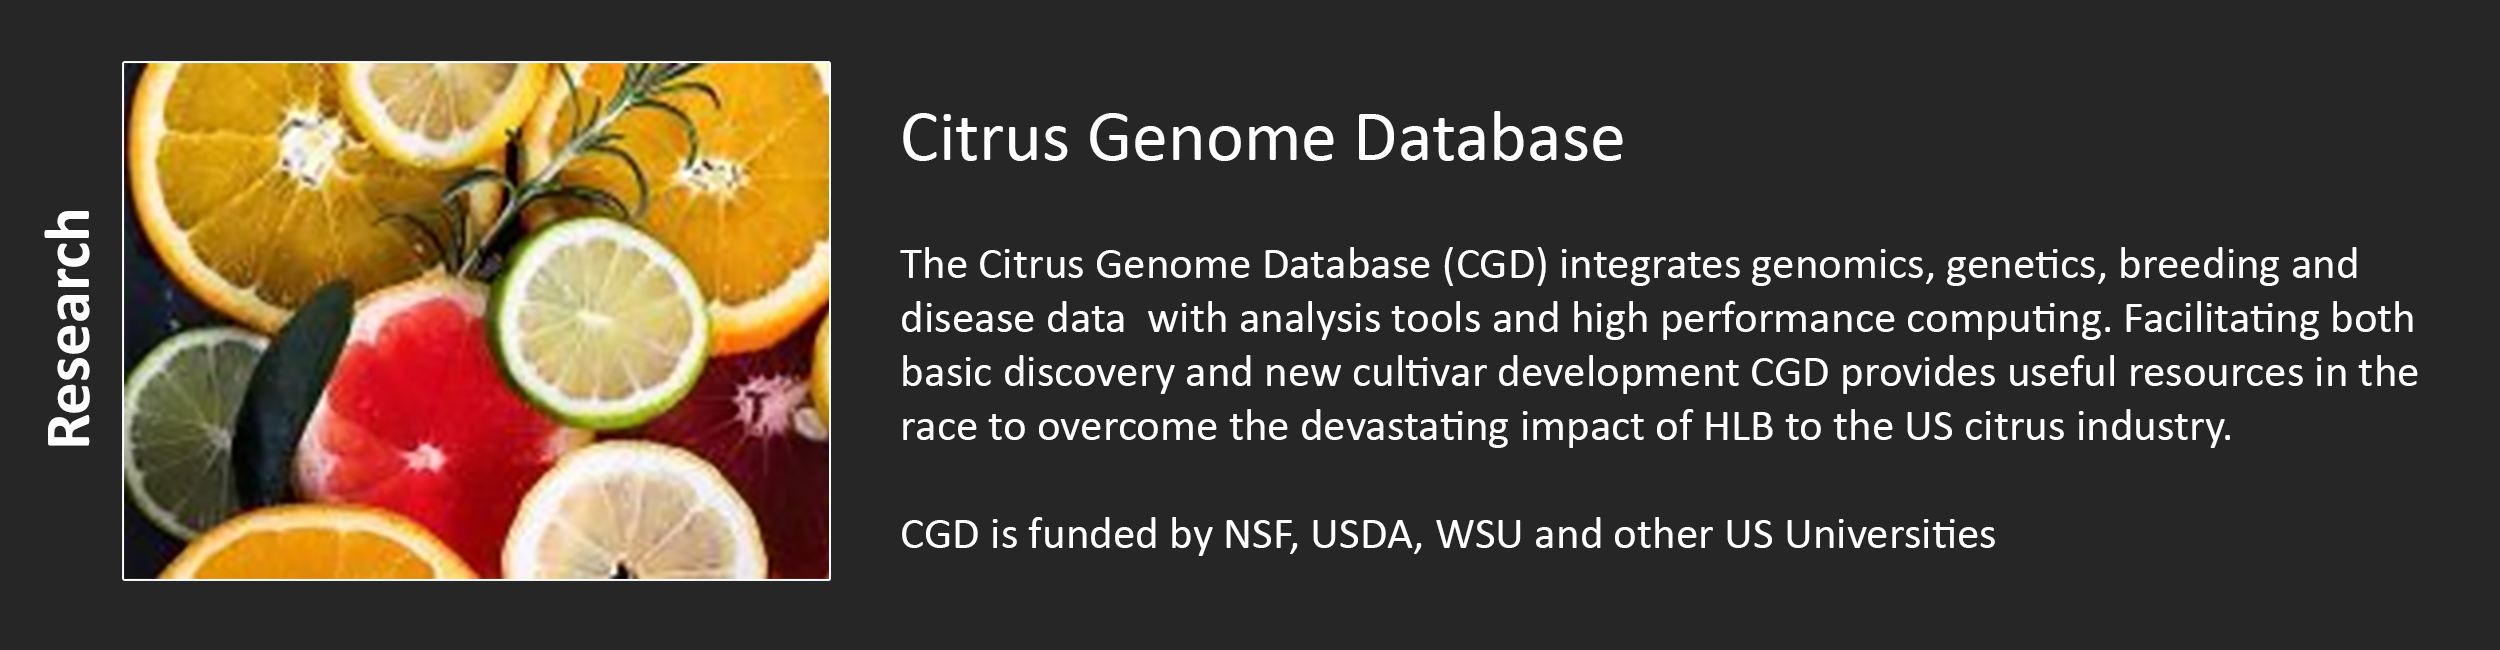 Citrus Genome Database